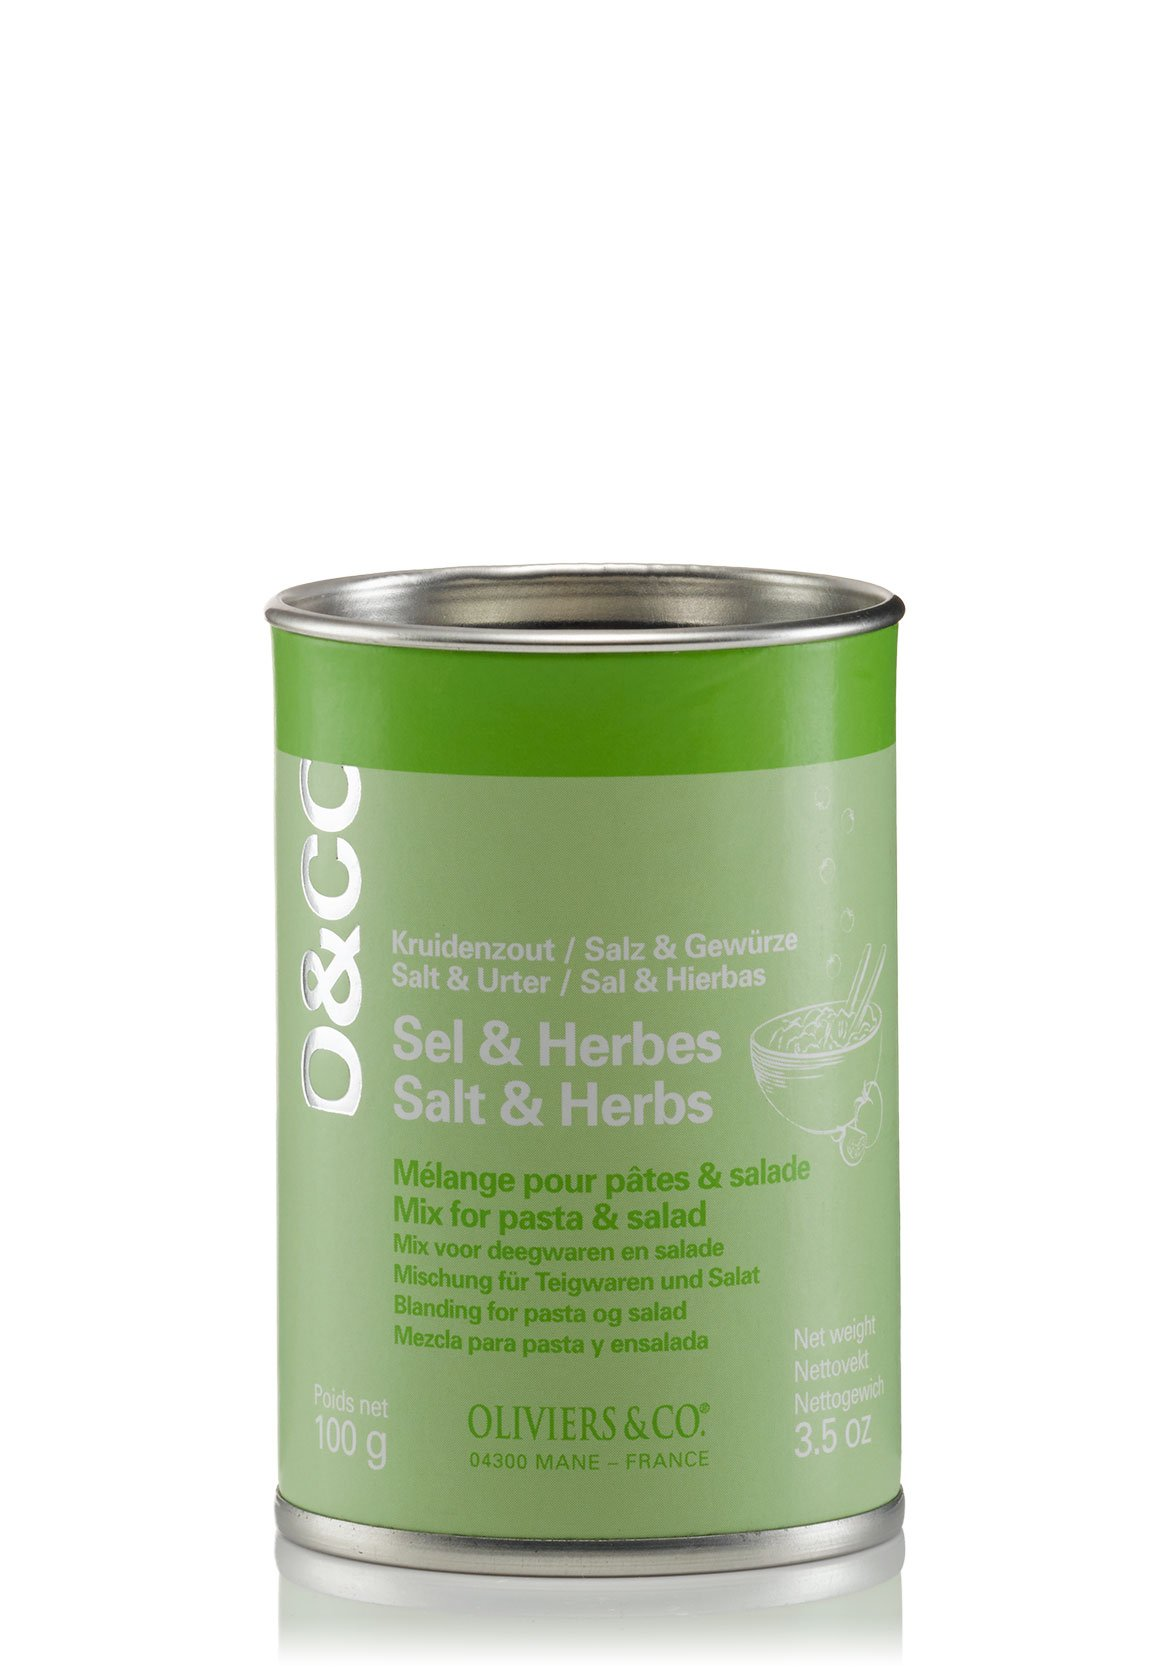 Oliviers & Co Salt & Herb Mix for Pasta and Salad